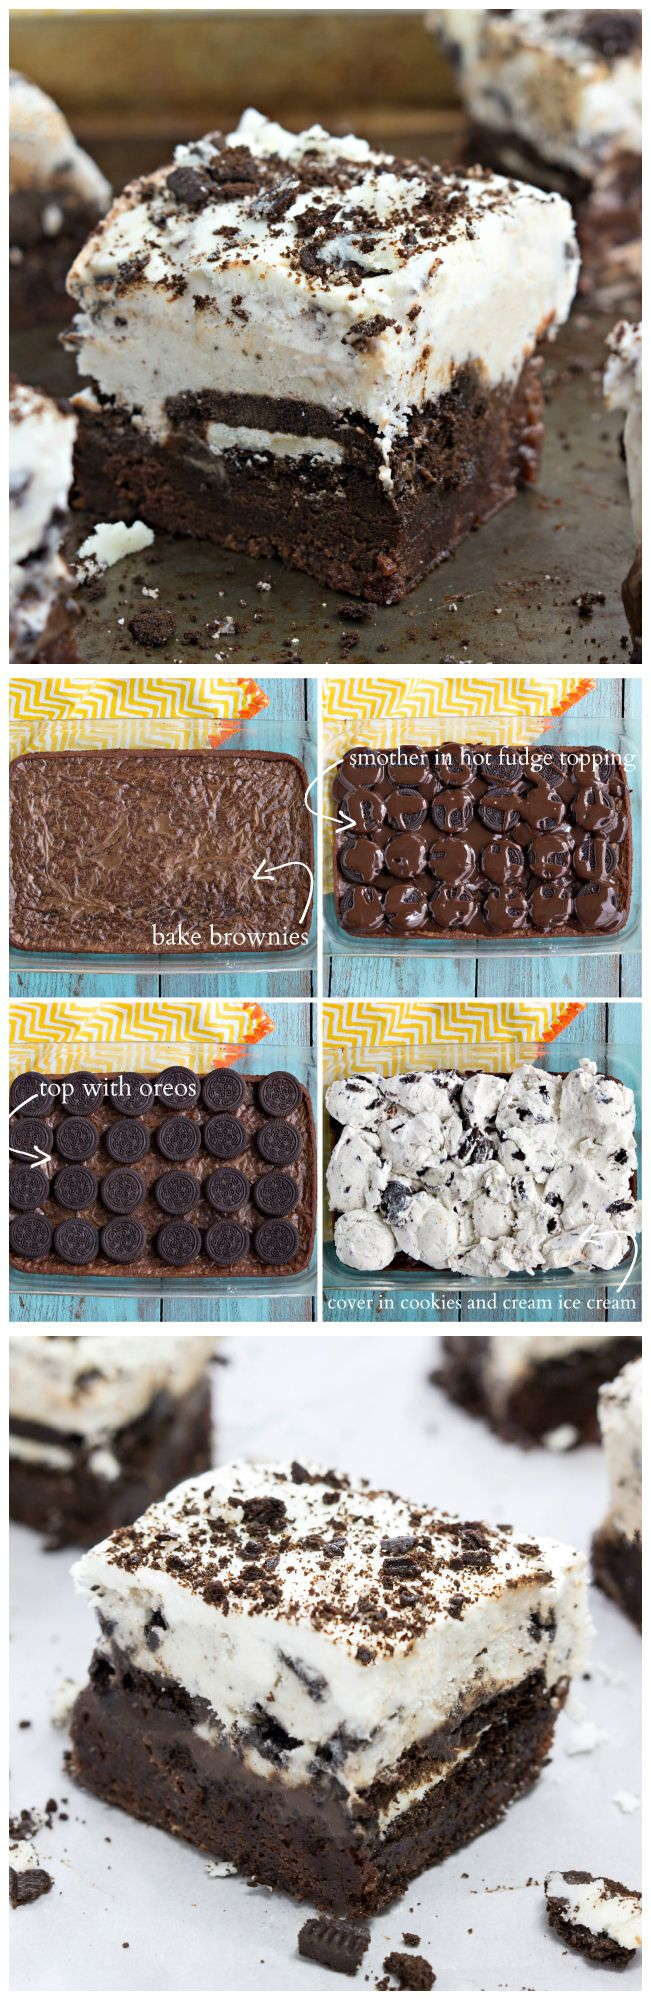 Brownie-bottomed, oreo-topped, hot-fudge smothered, ice cream-covered dessert bars. #dessert #brownie #oreo.....uh oh